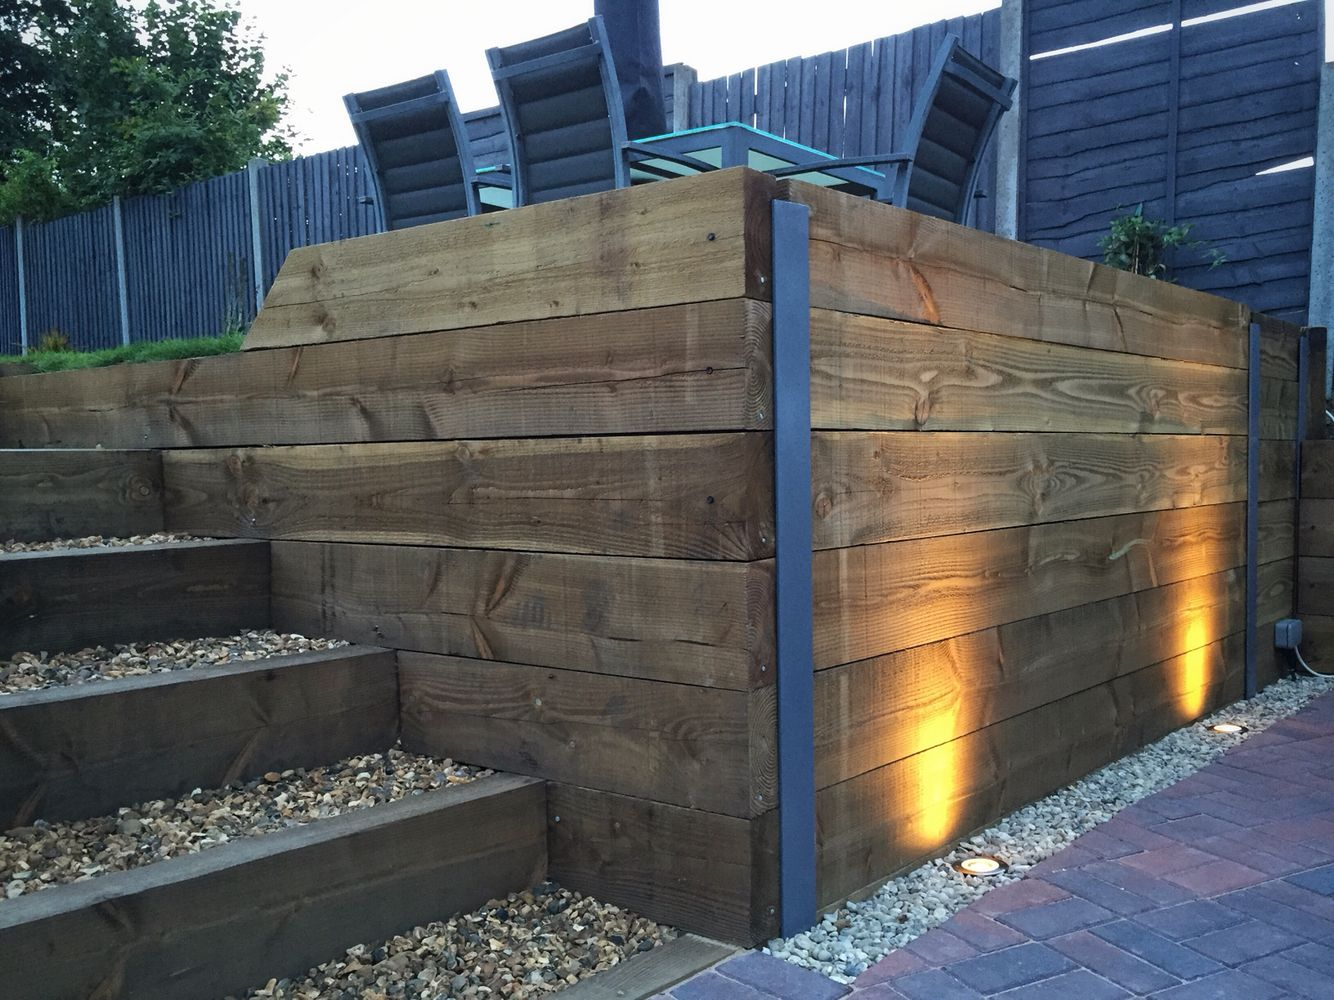 Outside Driveway Wall Lights : Finished retaining sleeper wall, steps, block paving driveway and exterior LED garden lighting ...